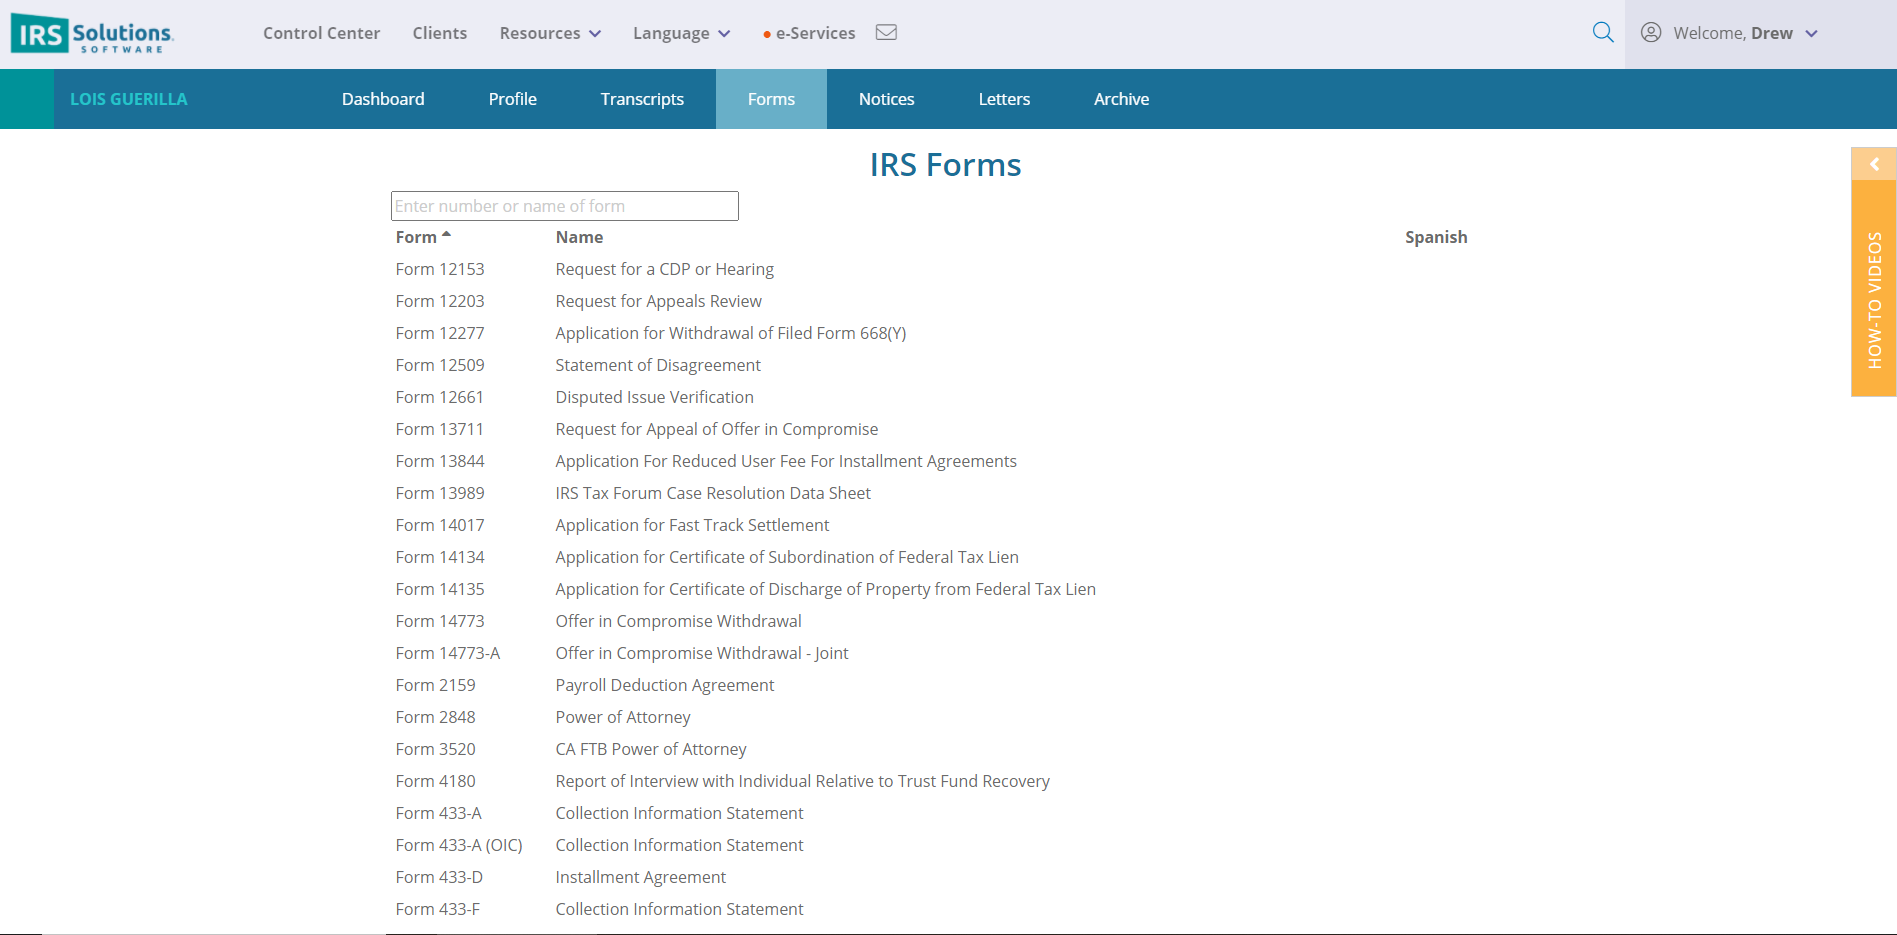 IRS Forms populated.